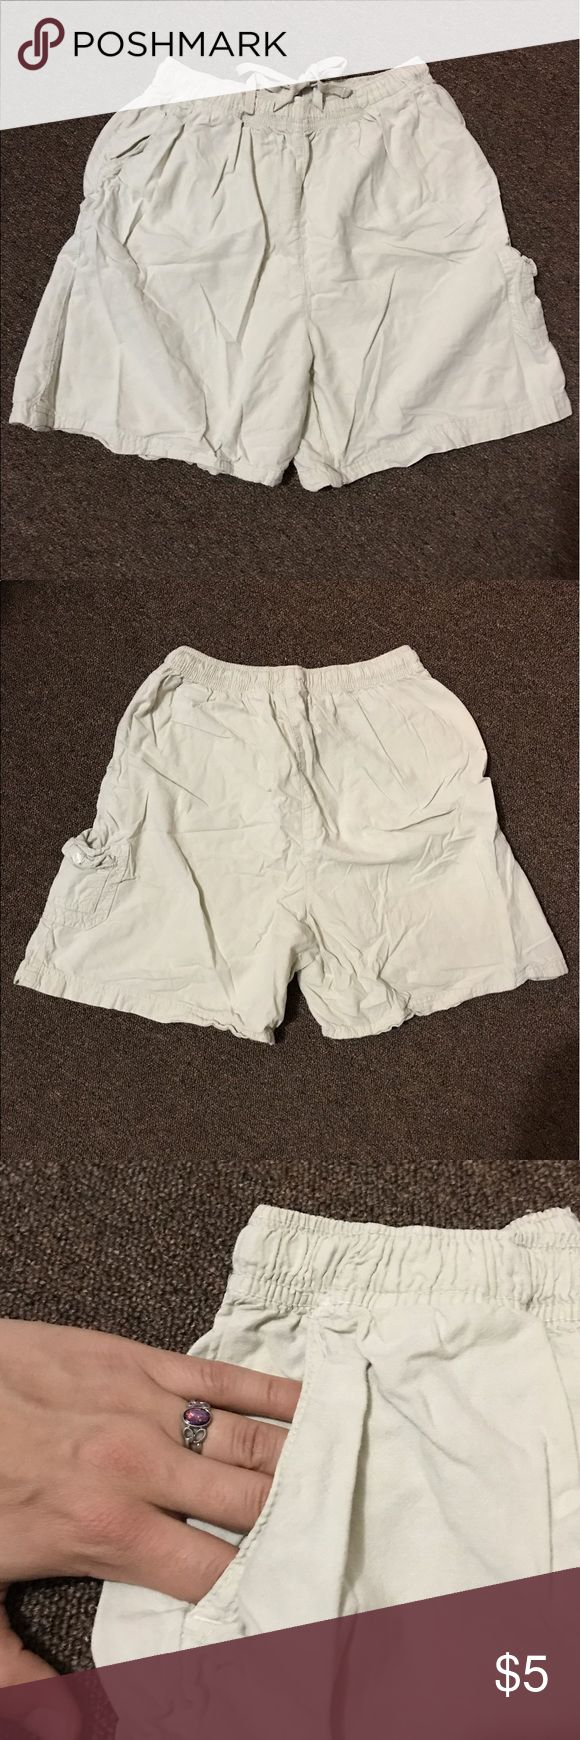 Khaki Cargo Shorts Gently used Khaki cargo shorts. Lots of pockets and very roomy! Please comment for q&a! Offers considered! Ragtop USA Shorts Cargos